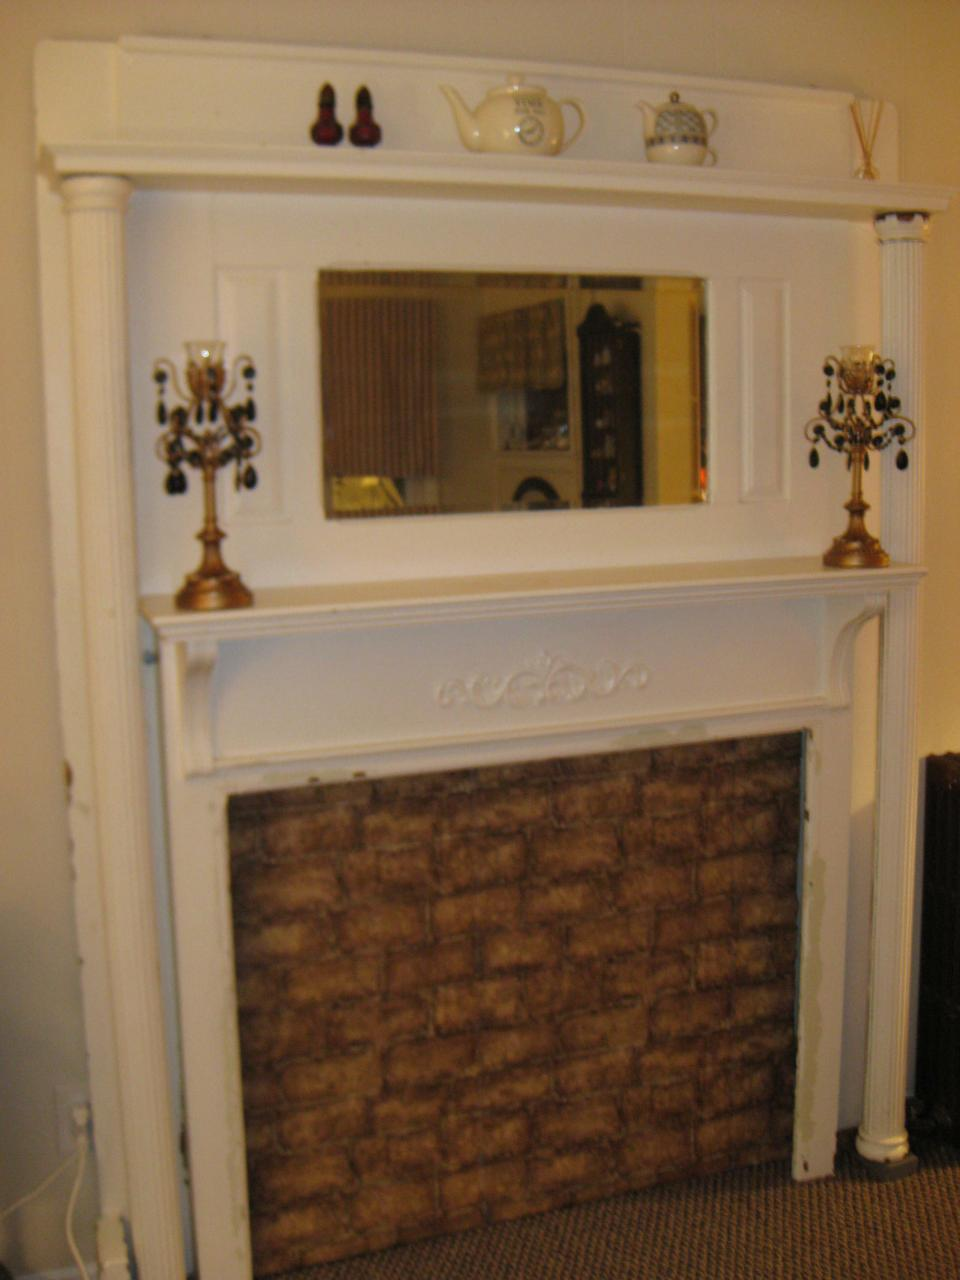 Fireplace Mantels: Add Vintage Charm with Salvaged Surrounds | The ...